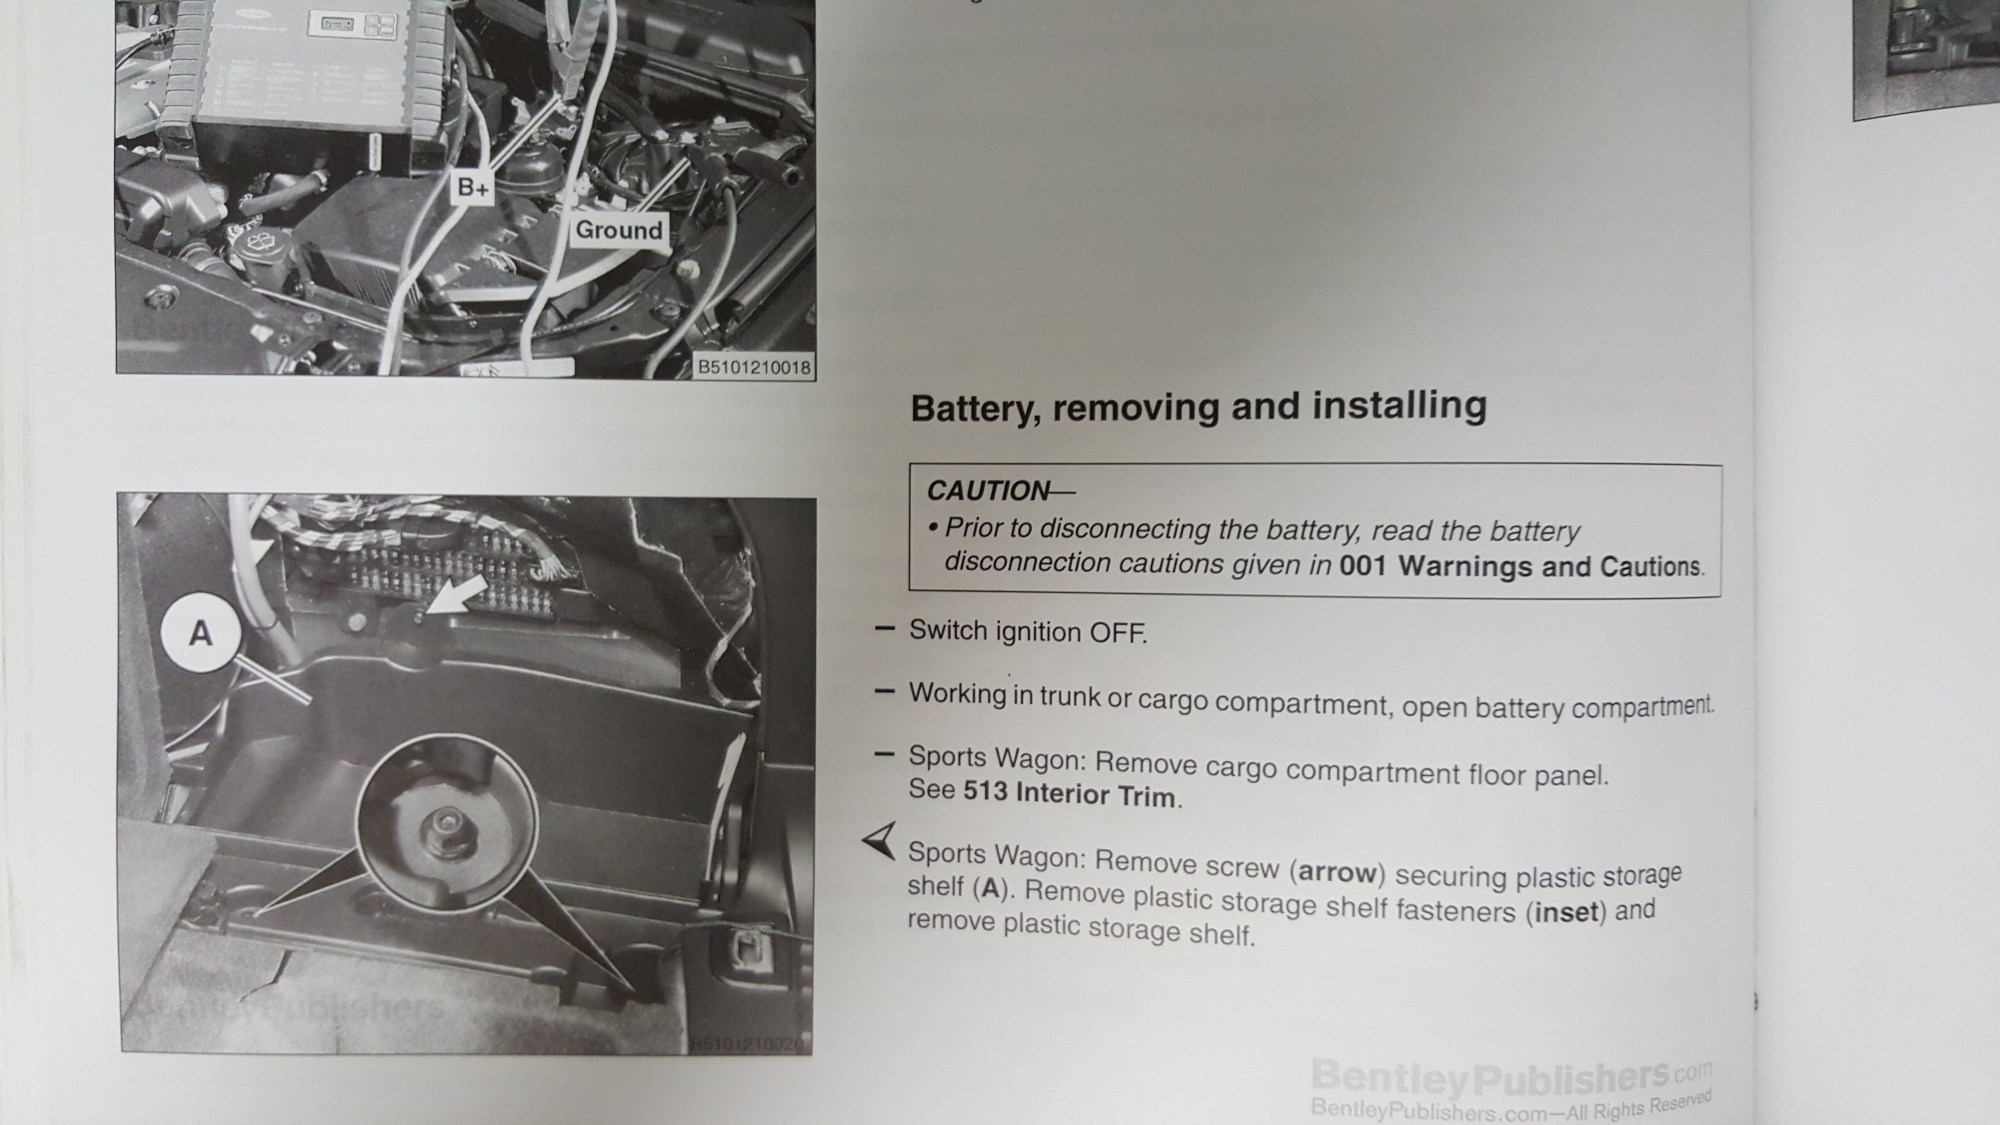 hight resolution of the manual all but confirms that the charging system in the bmw seems to store voltage settings and the state of the old battery